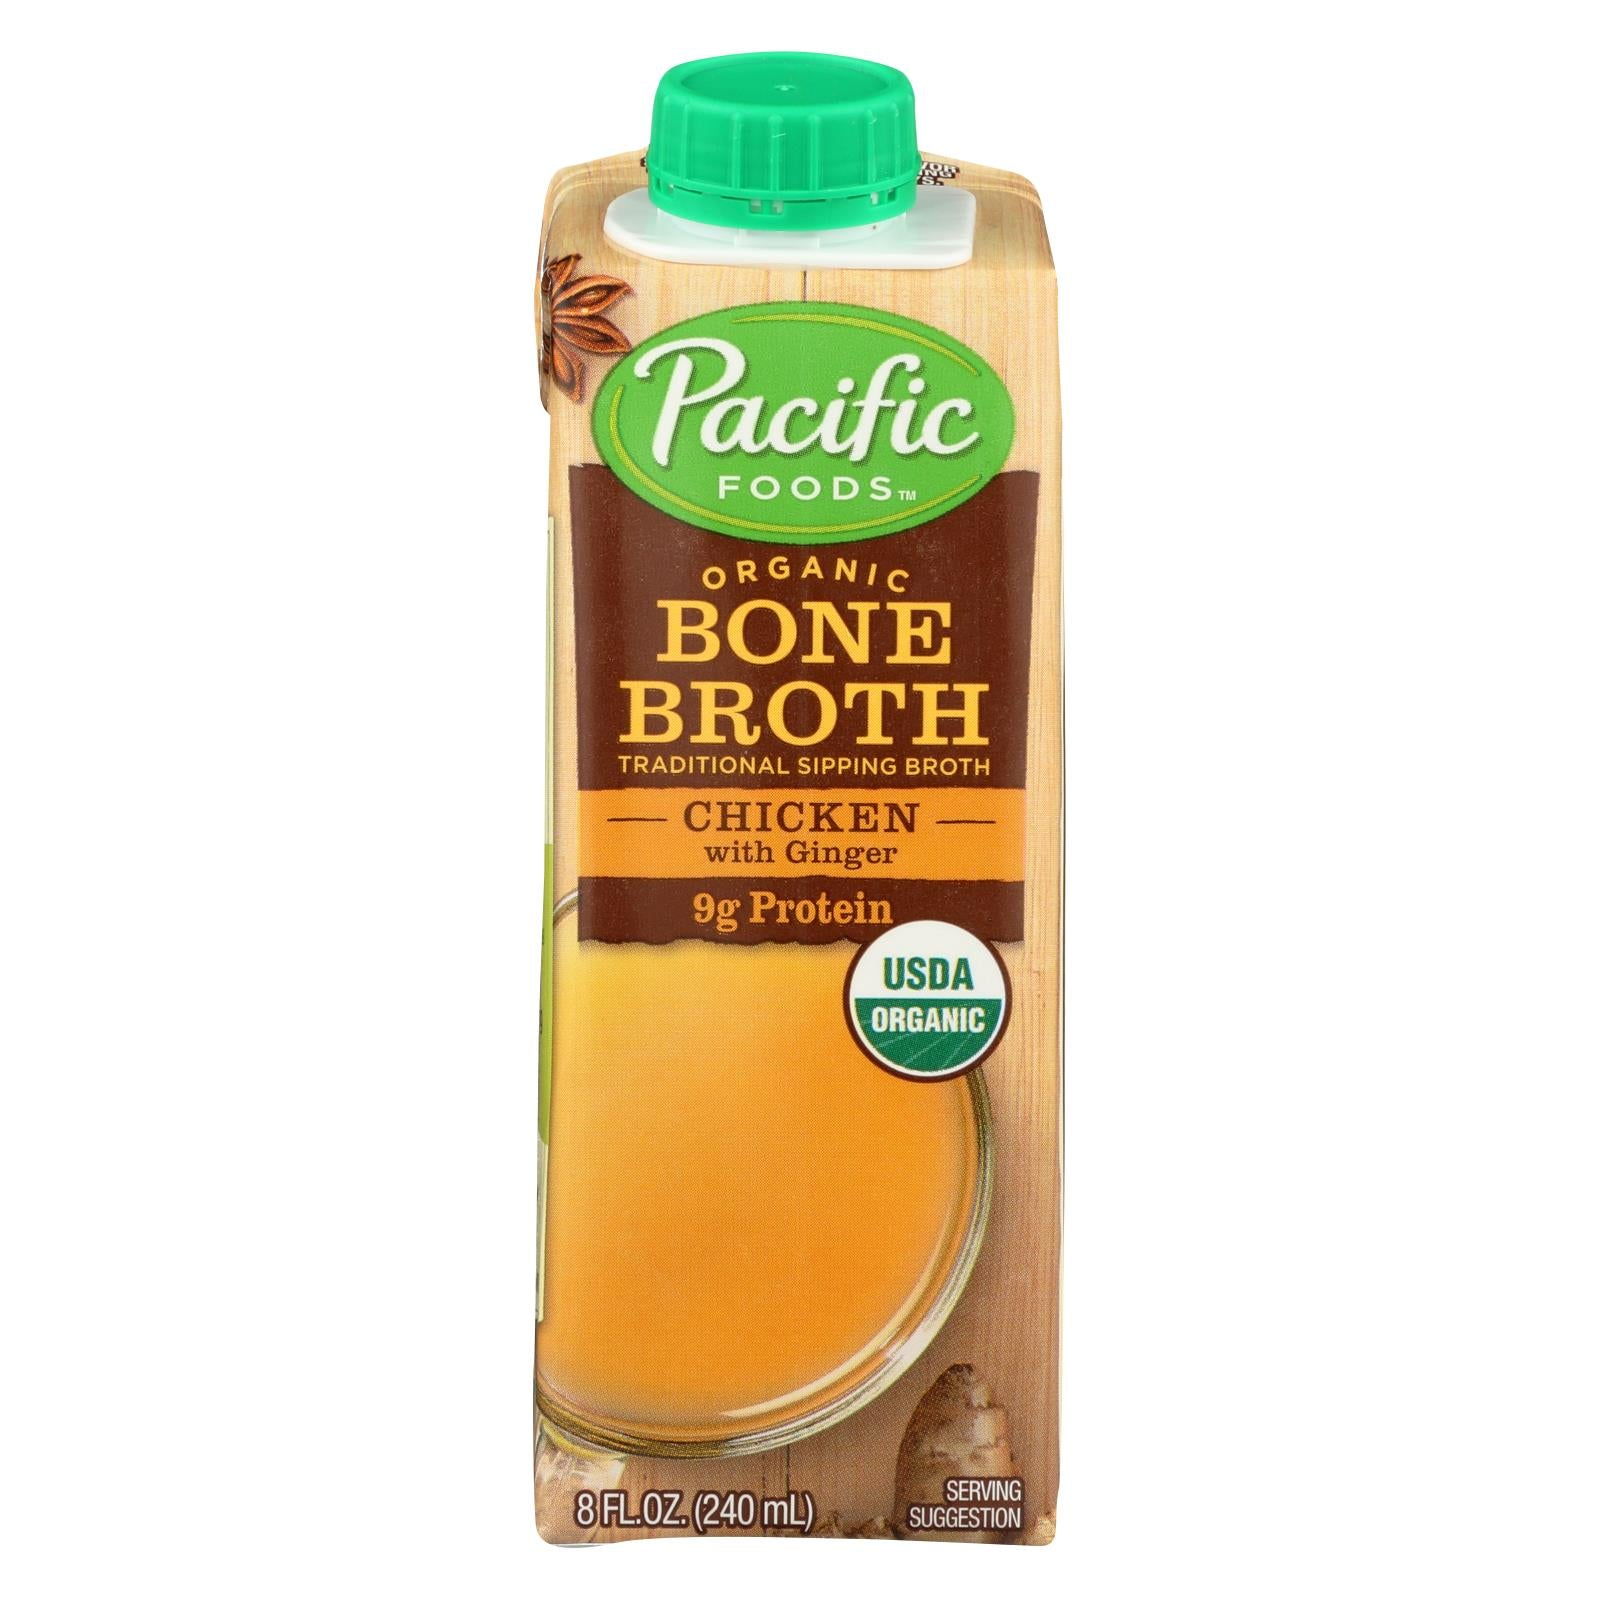 Pacific Natural Foods Bone Broth - Chicken With Ginger - Case Of 12 - 8 Fl Oz. HG1613660